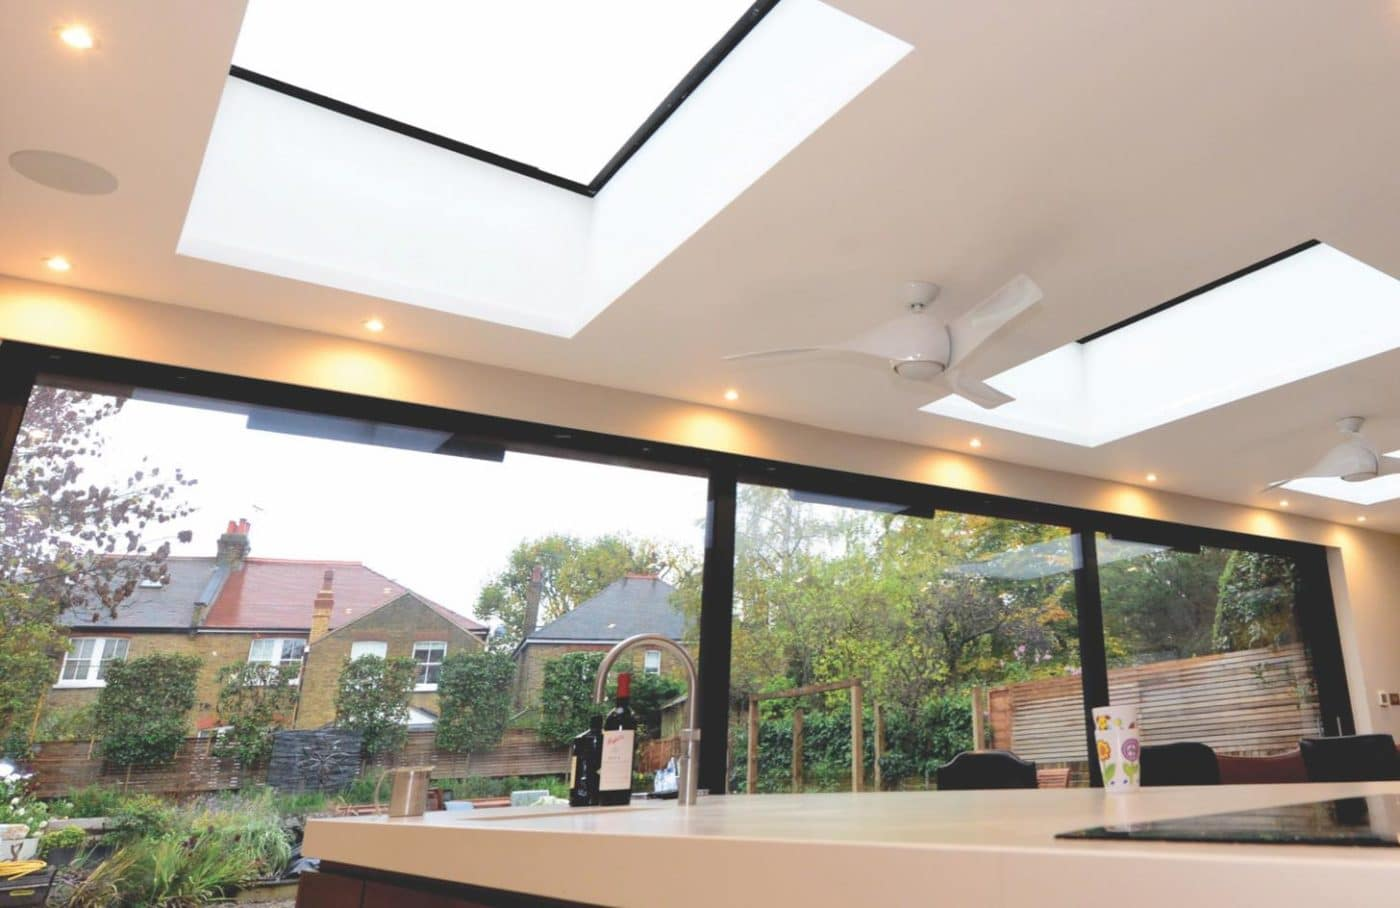 Photo showing a light contemporary room that shows the effectiveness of IDSystems roof-lights